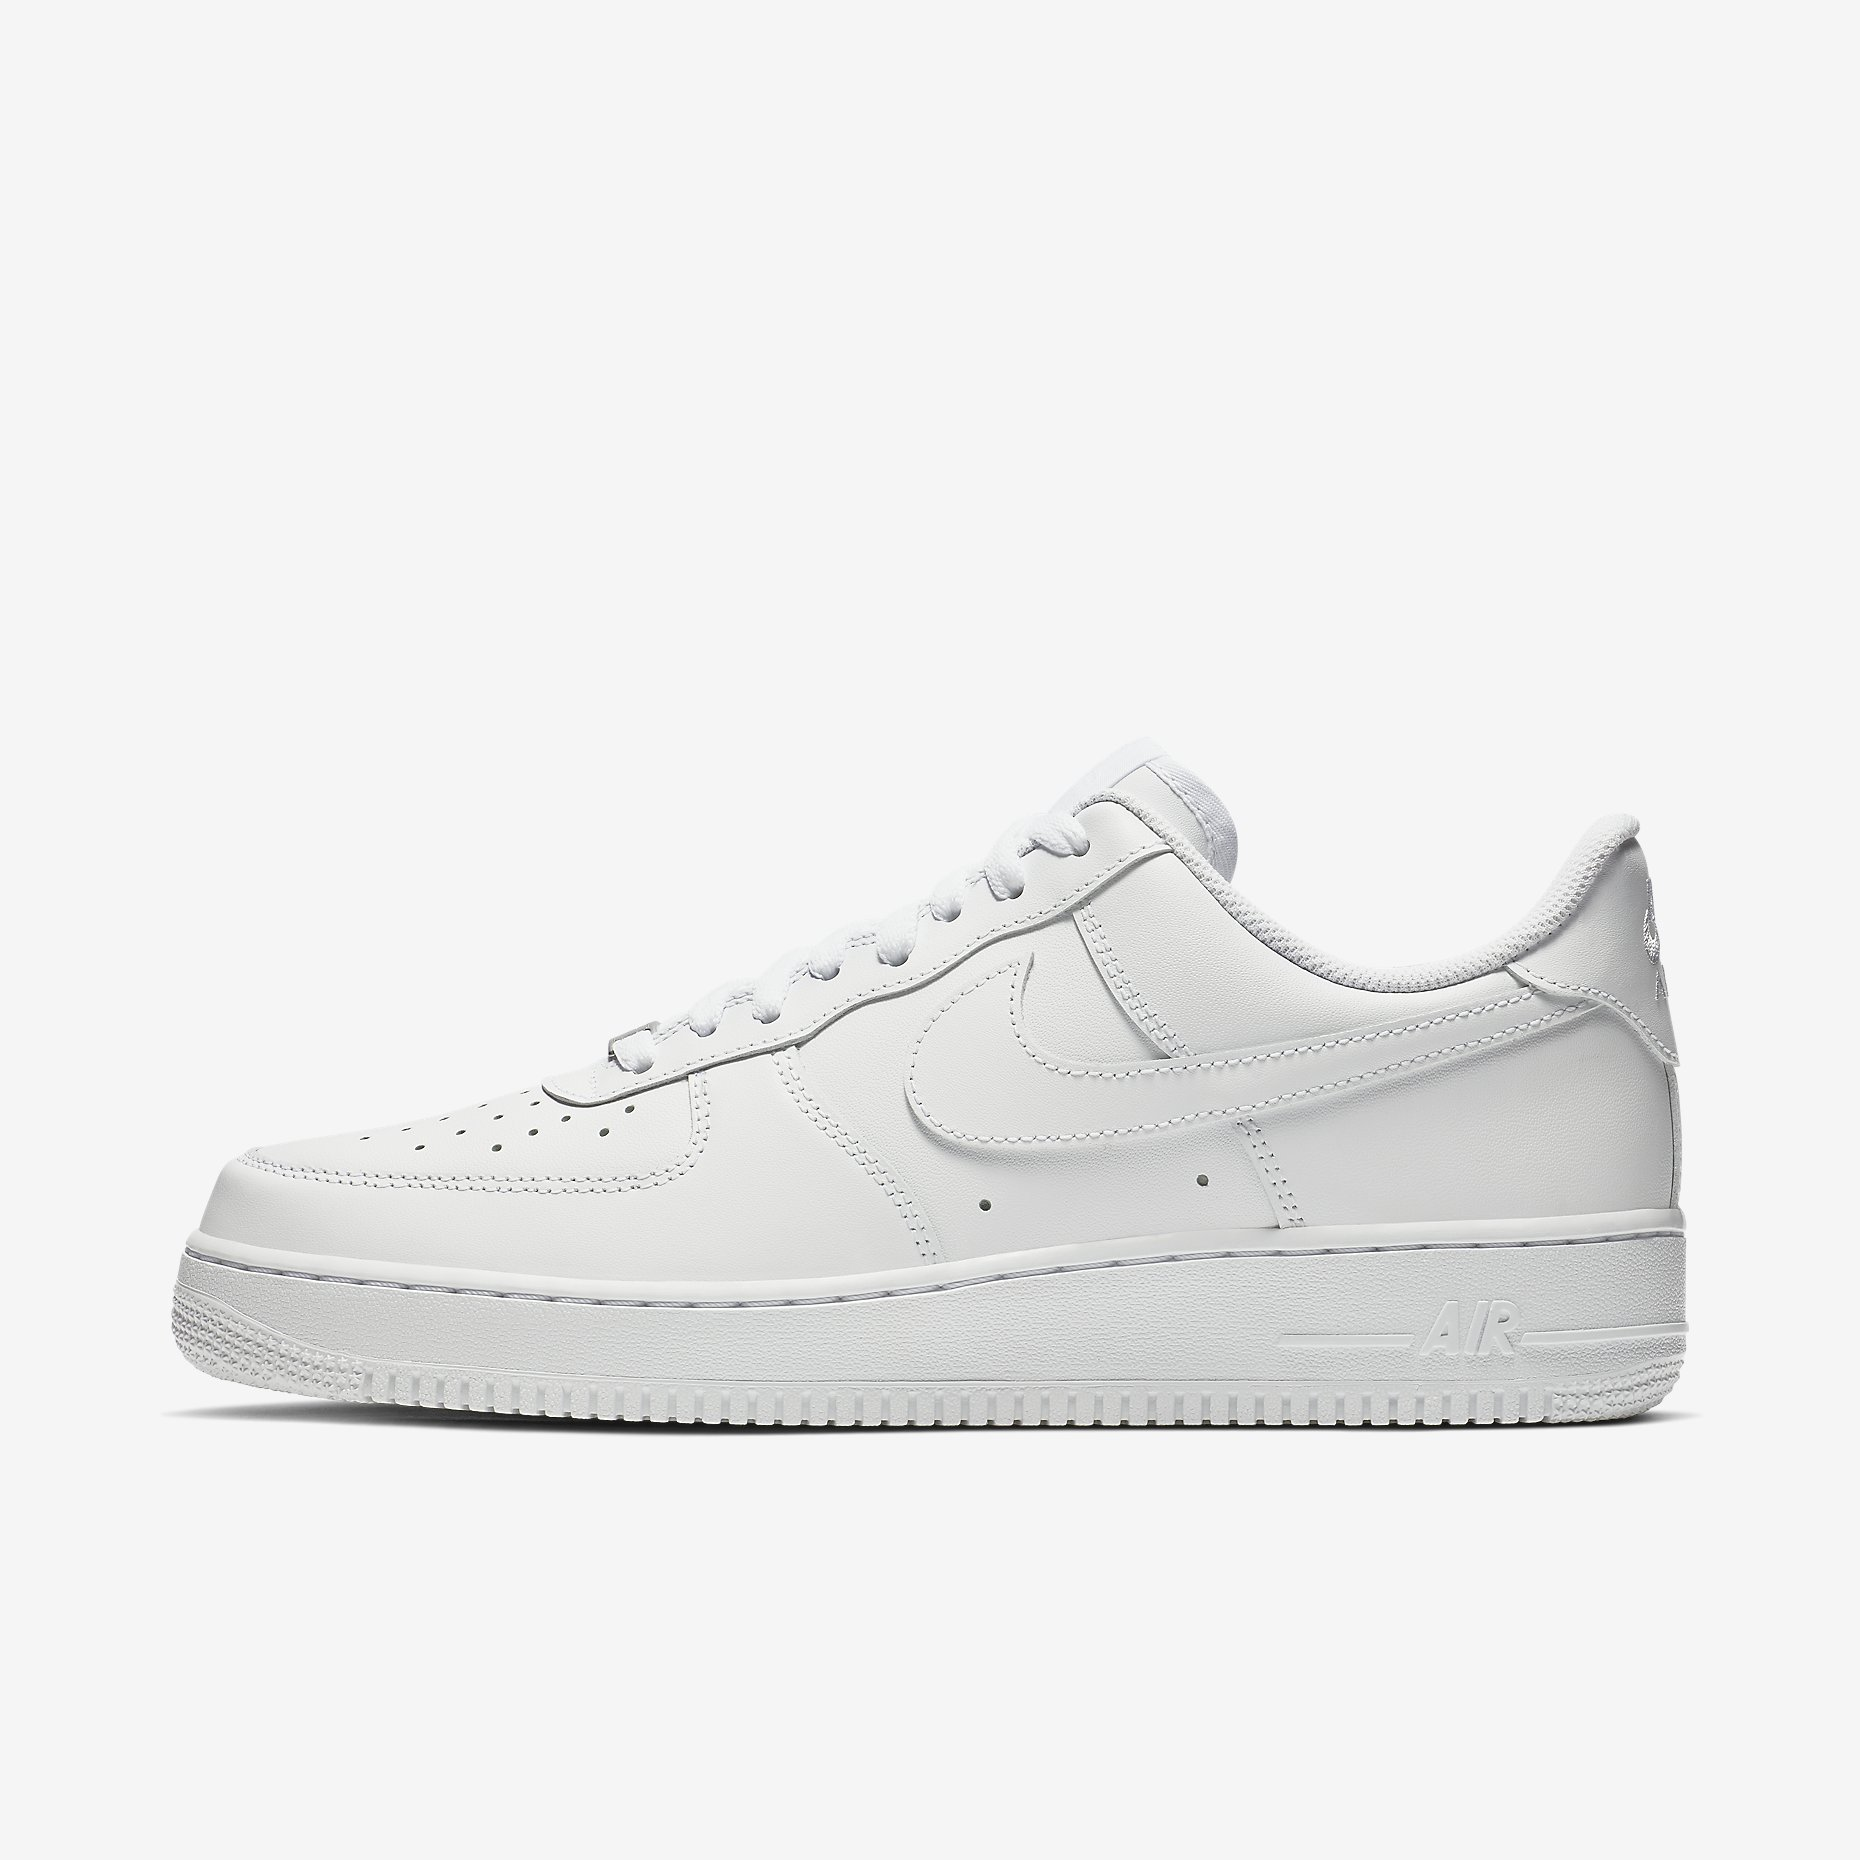 nike-air-force-1-low-07-white-315122-1111